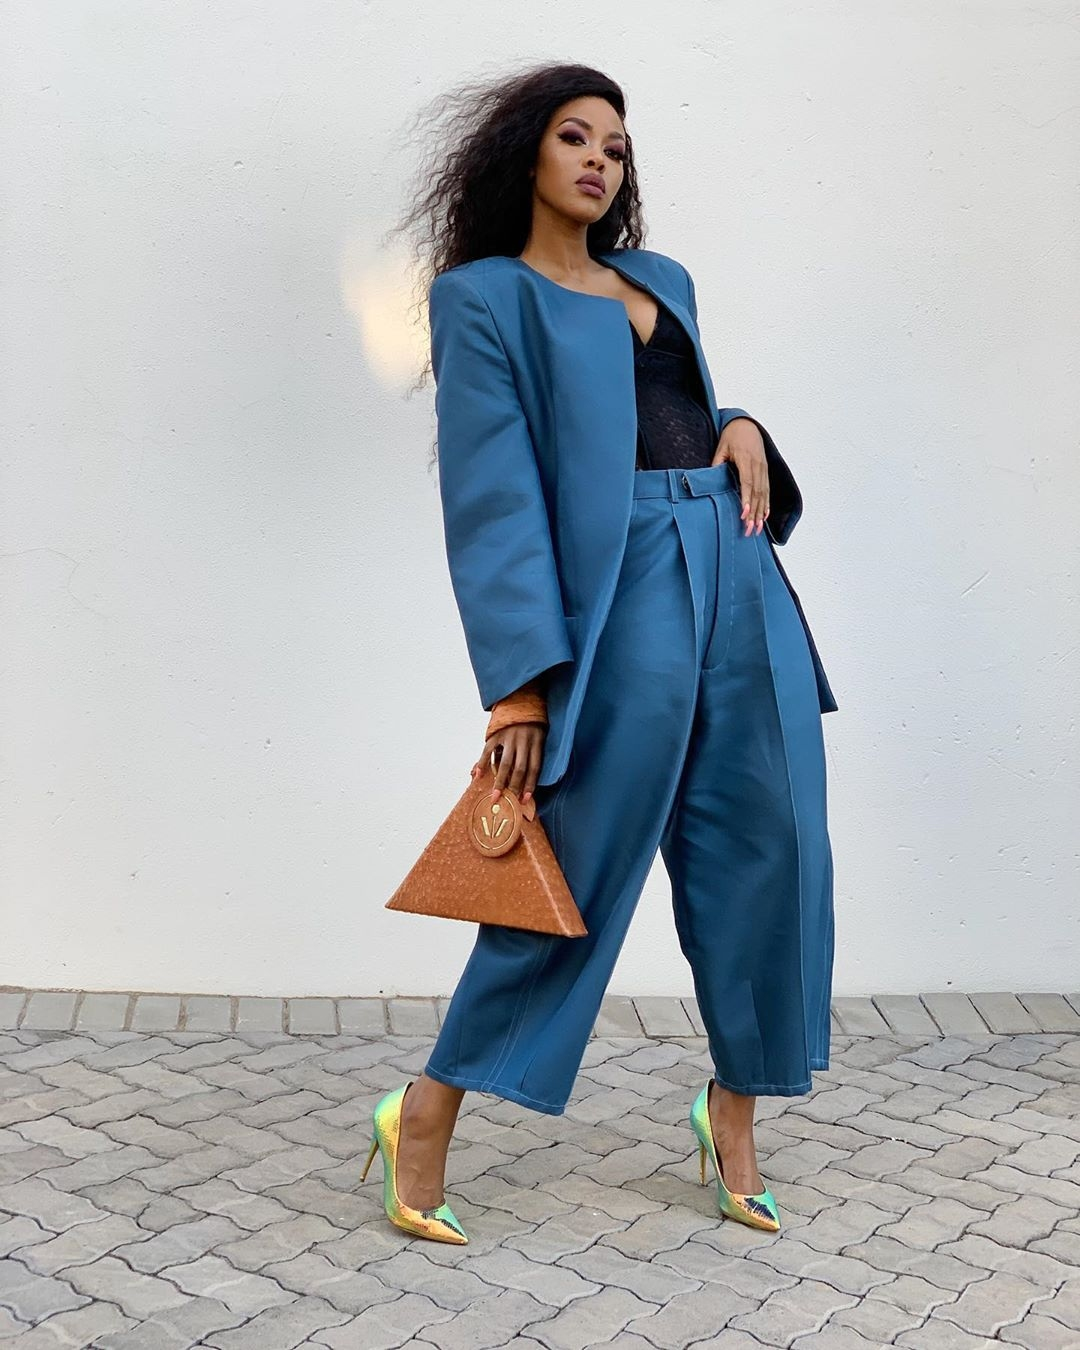 top-fashion-style-influencers-instagram-celebs